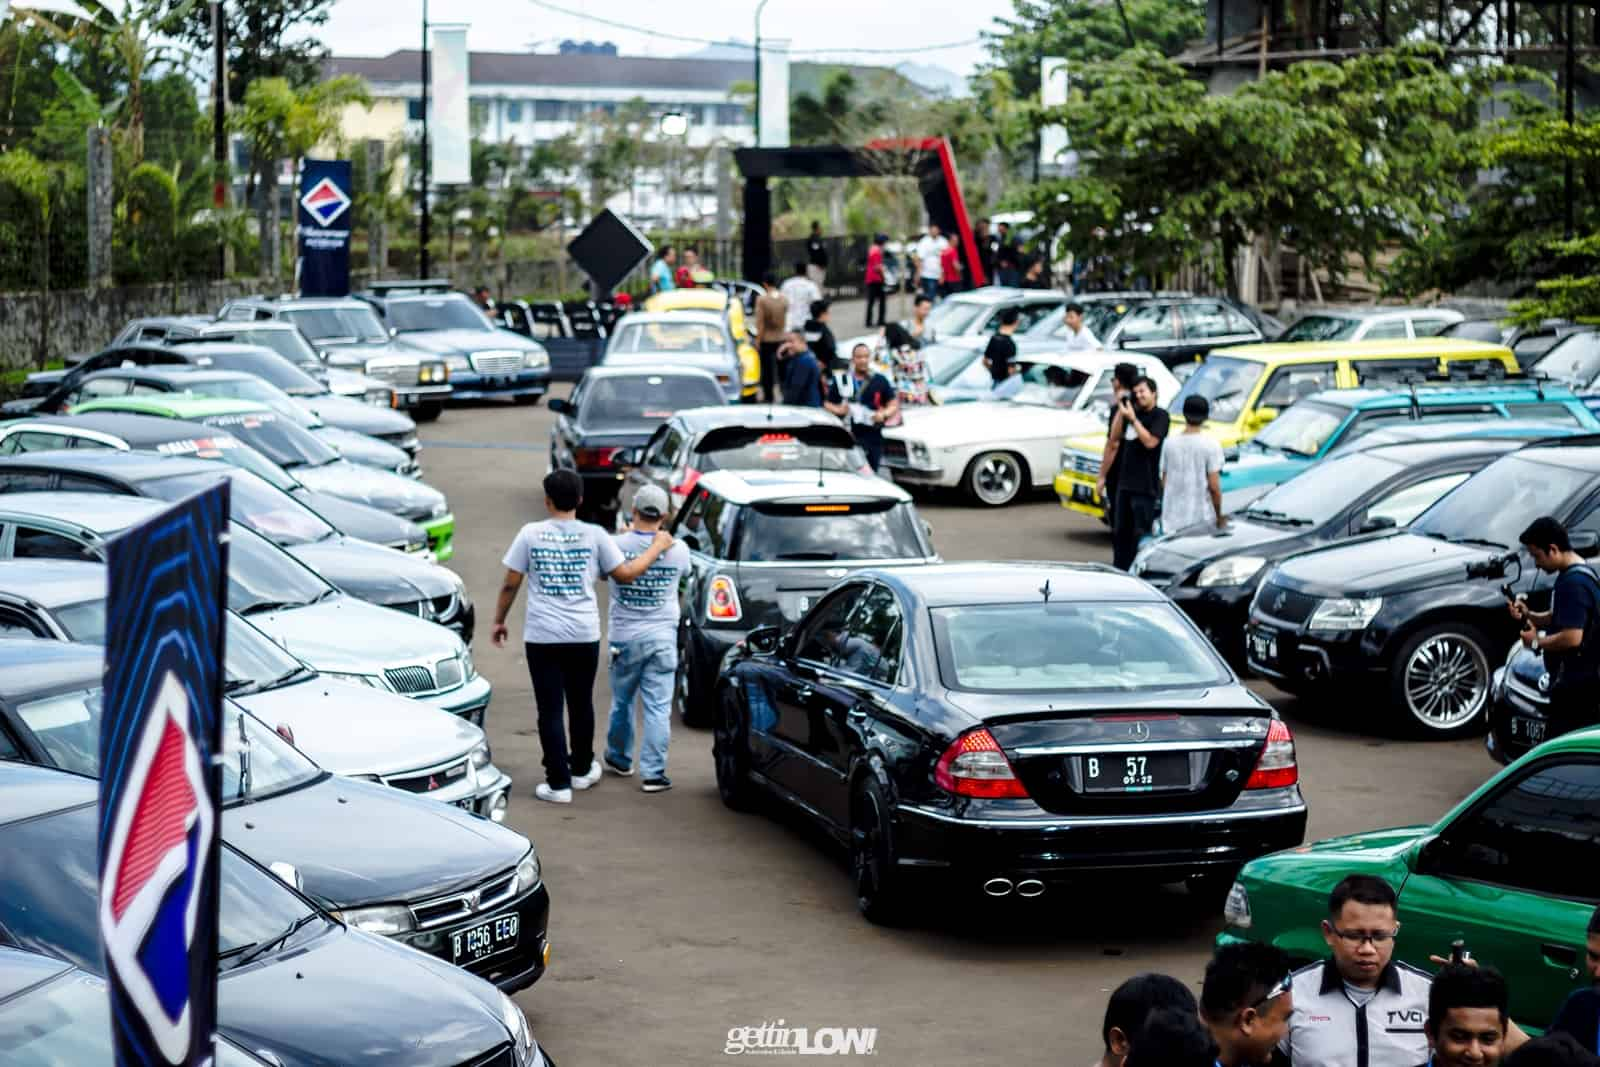 INTERSPORT AUTOSHOW: SUKABUMI